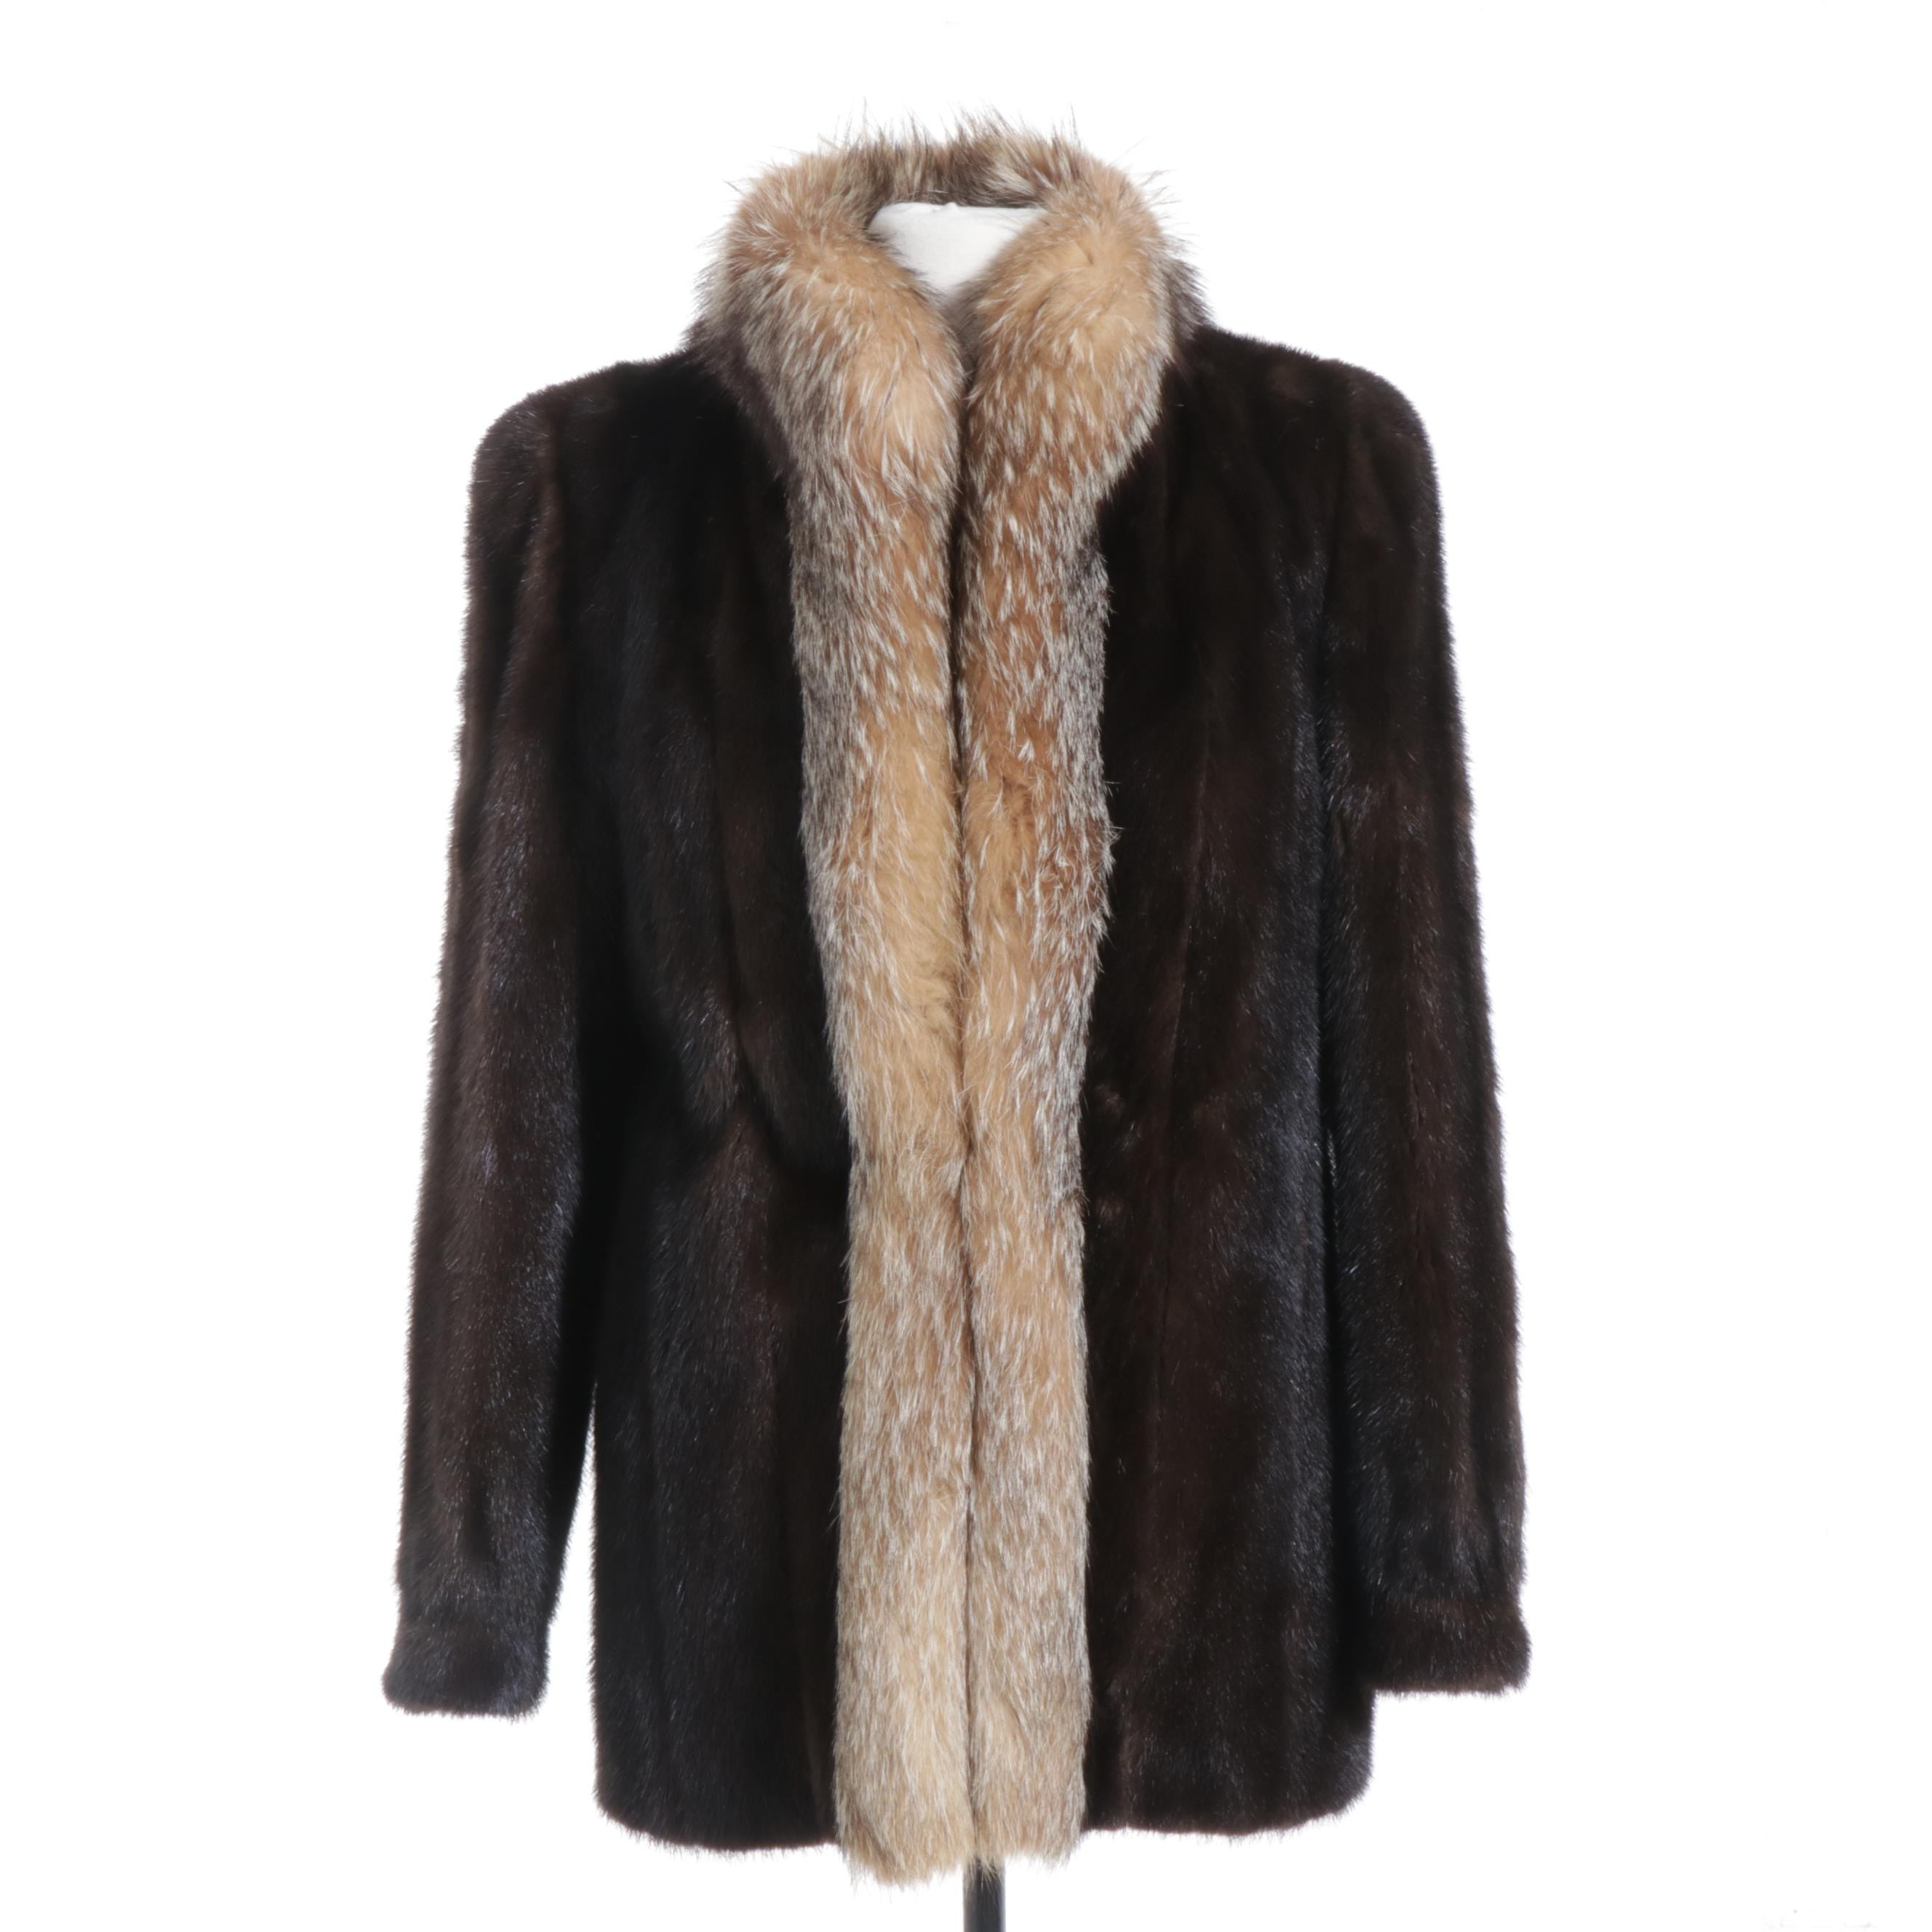 Mahogany Mink Fur Coat with Crystal Fox Fur Tuxedo Collar